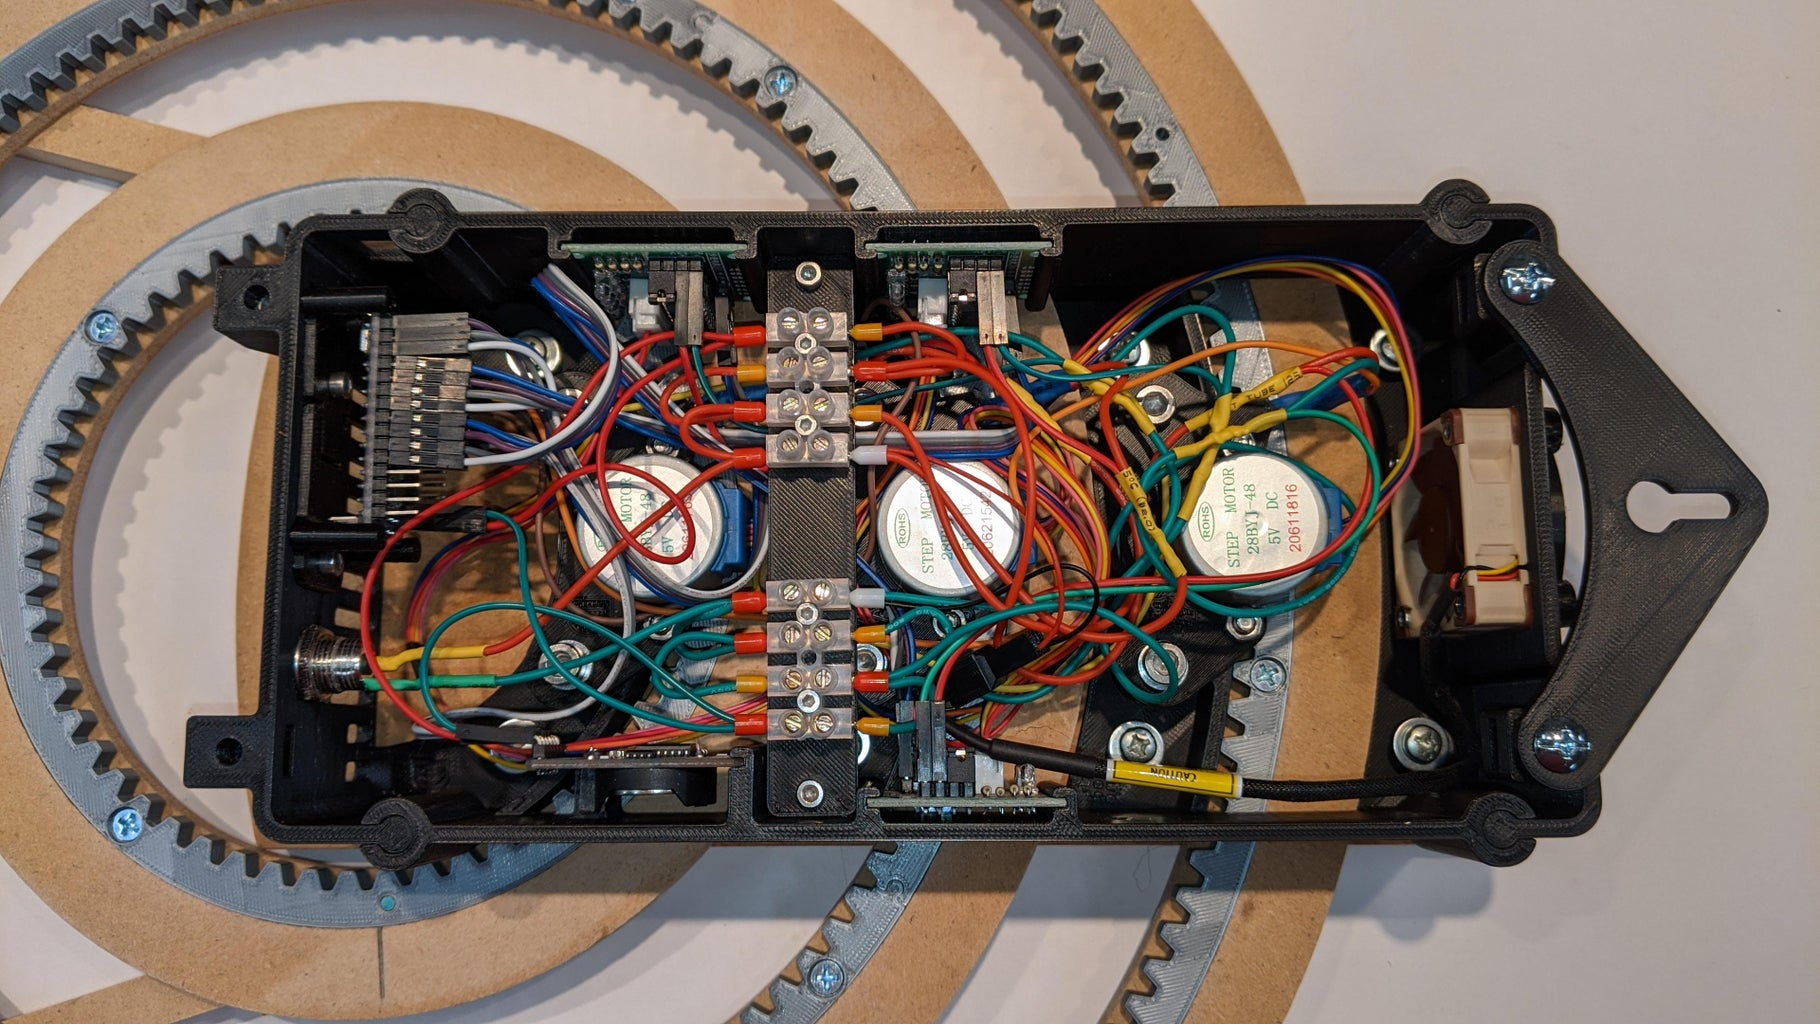 Wiring and Code Editing